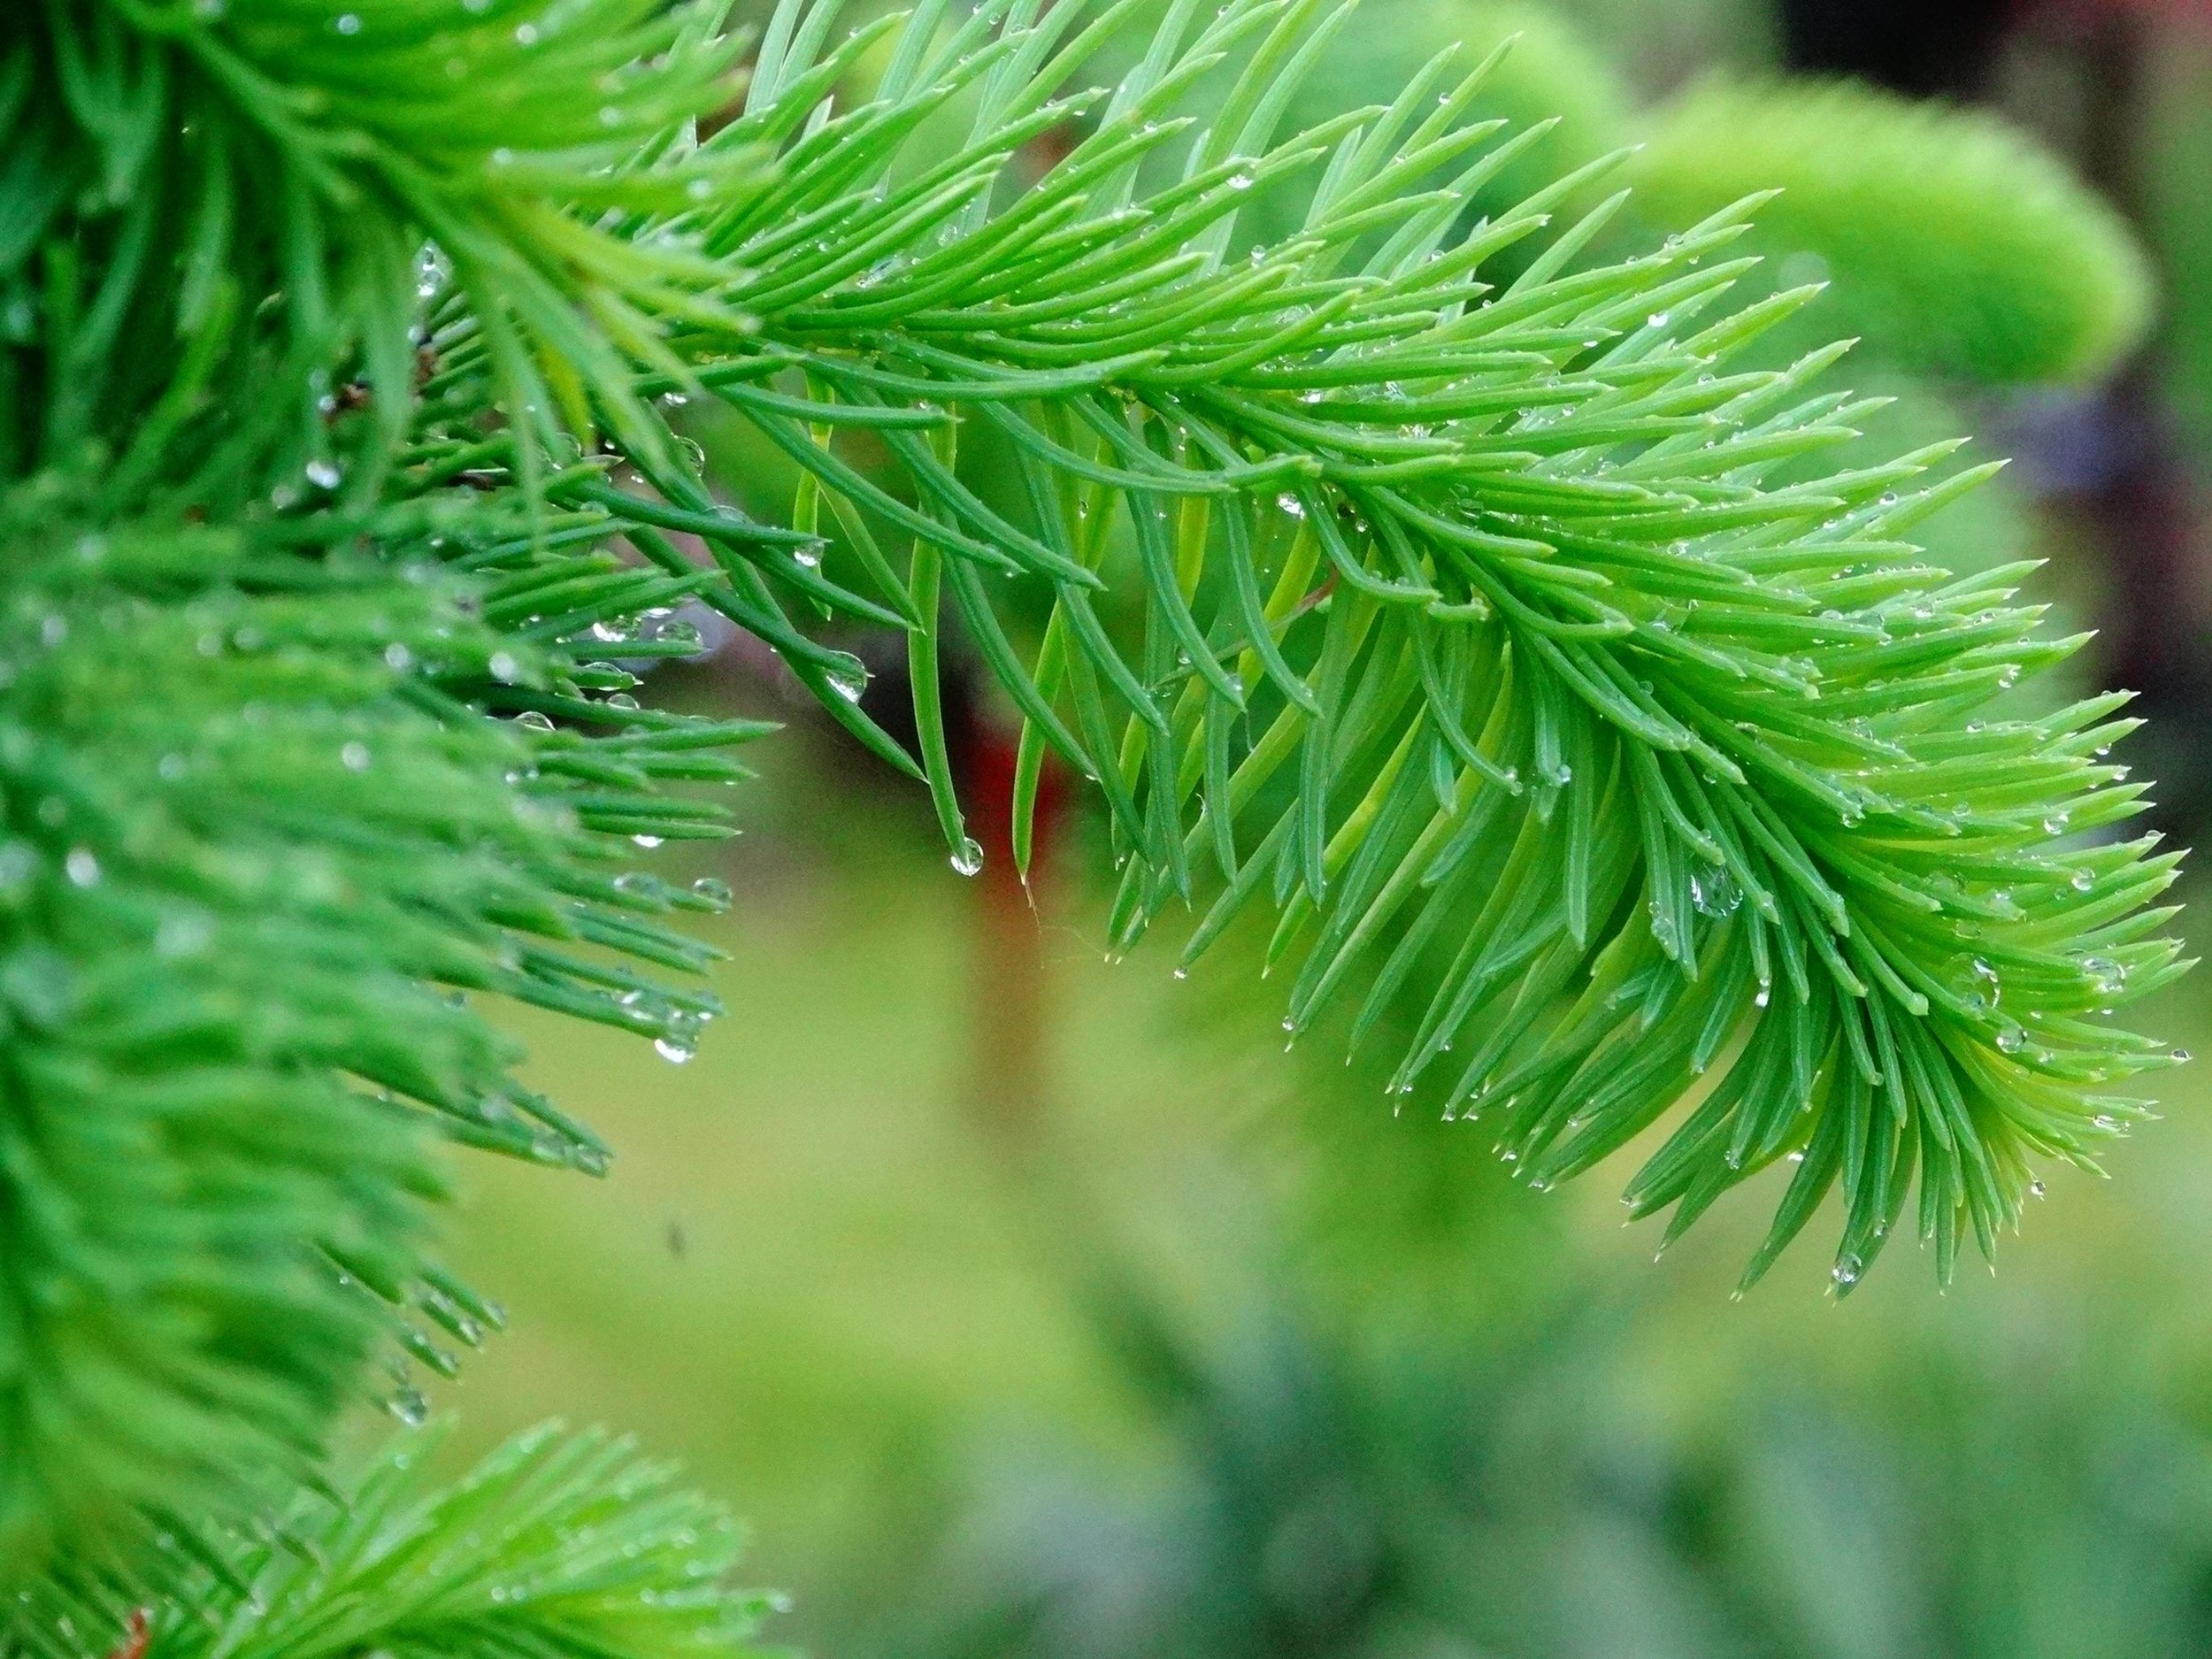 Pine Detail with Rain